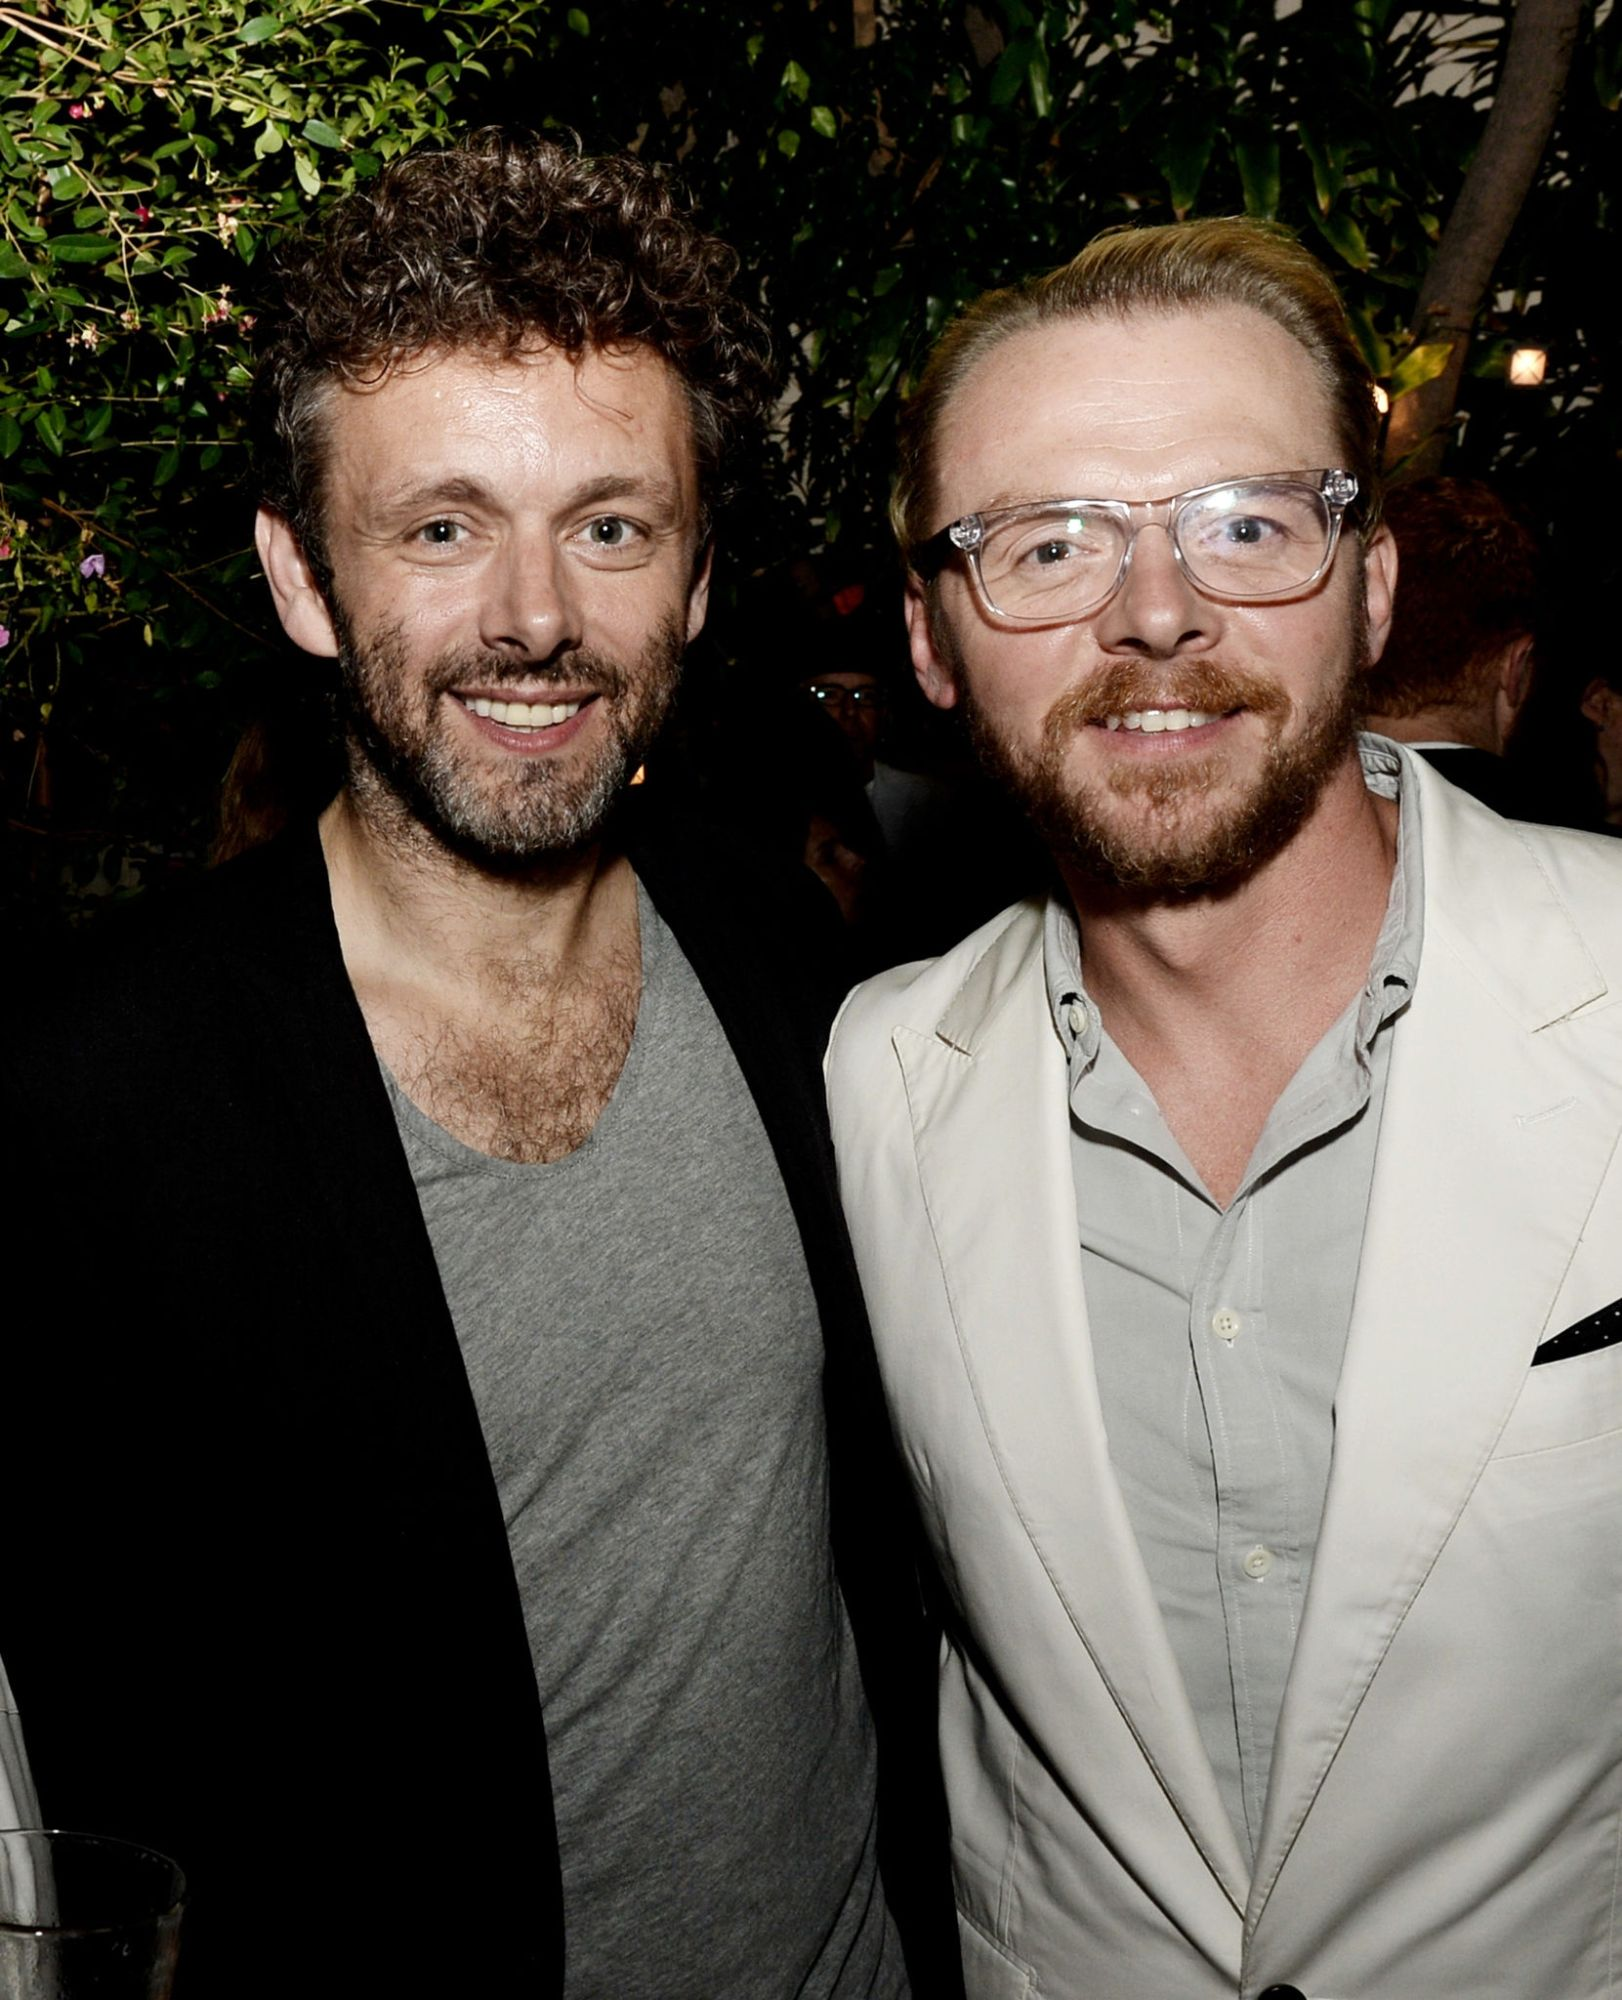 Happy birthday to the amazing Simon Pegg! Hope you have a fantastic day!